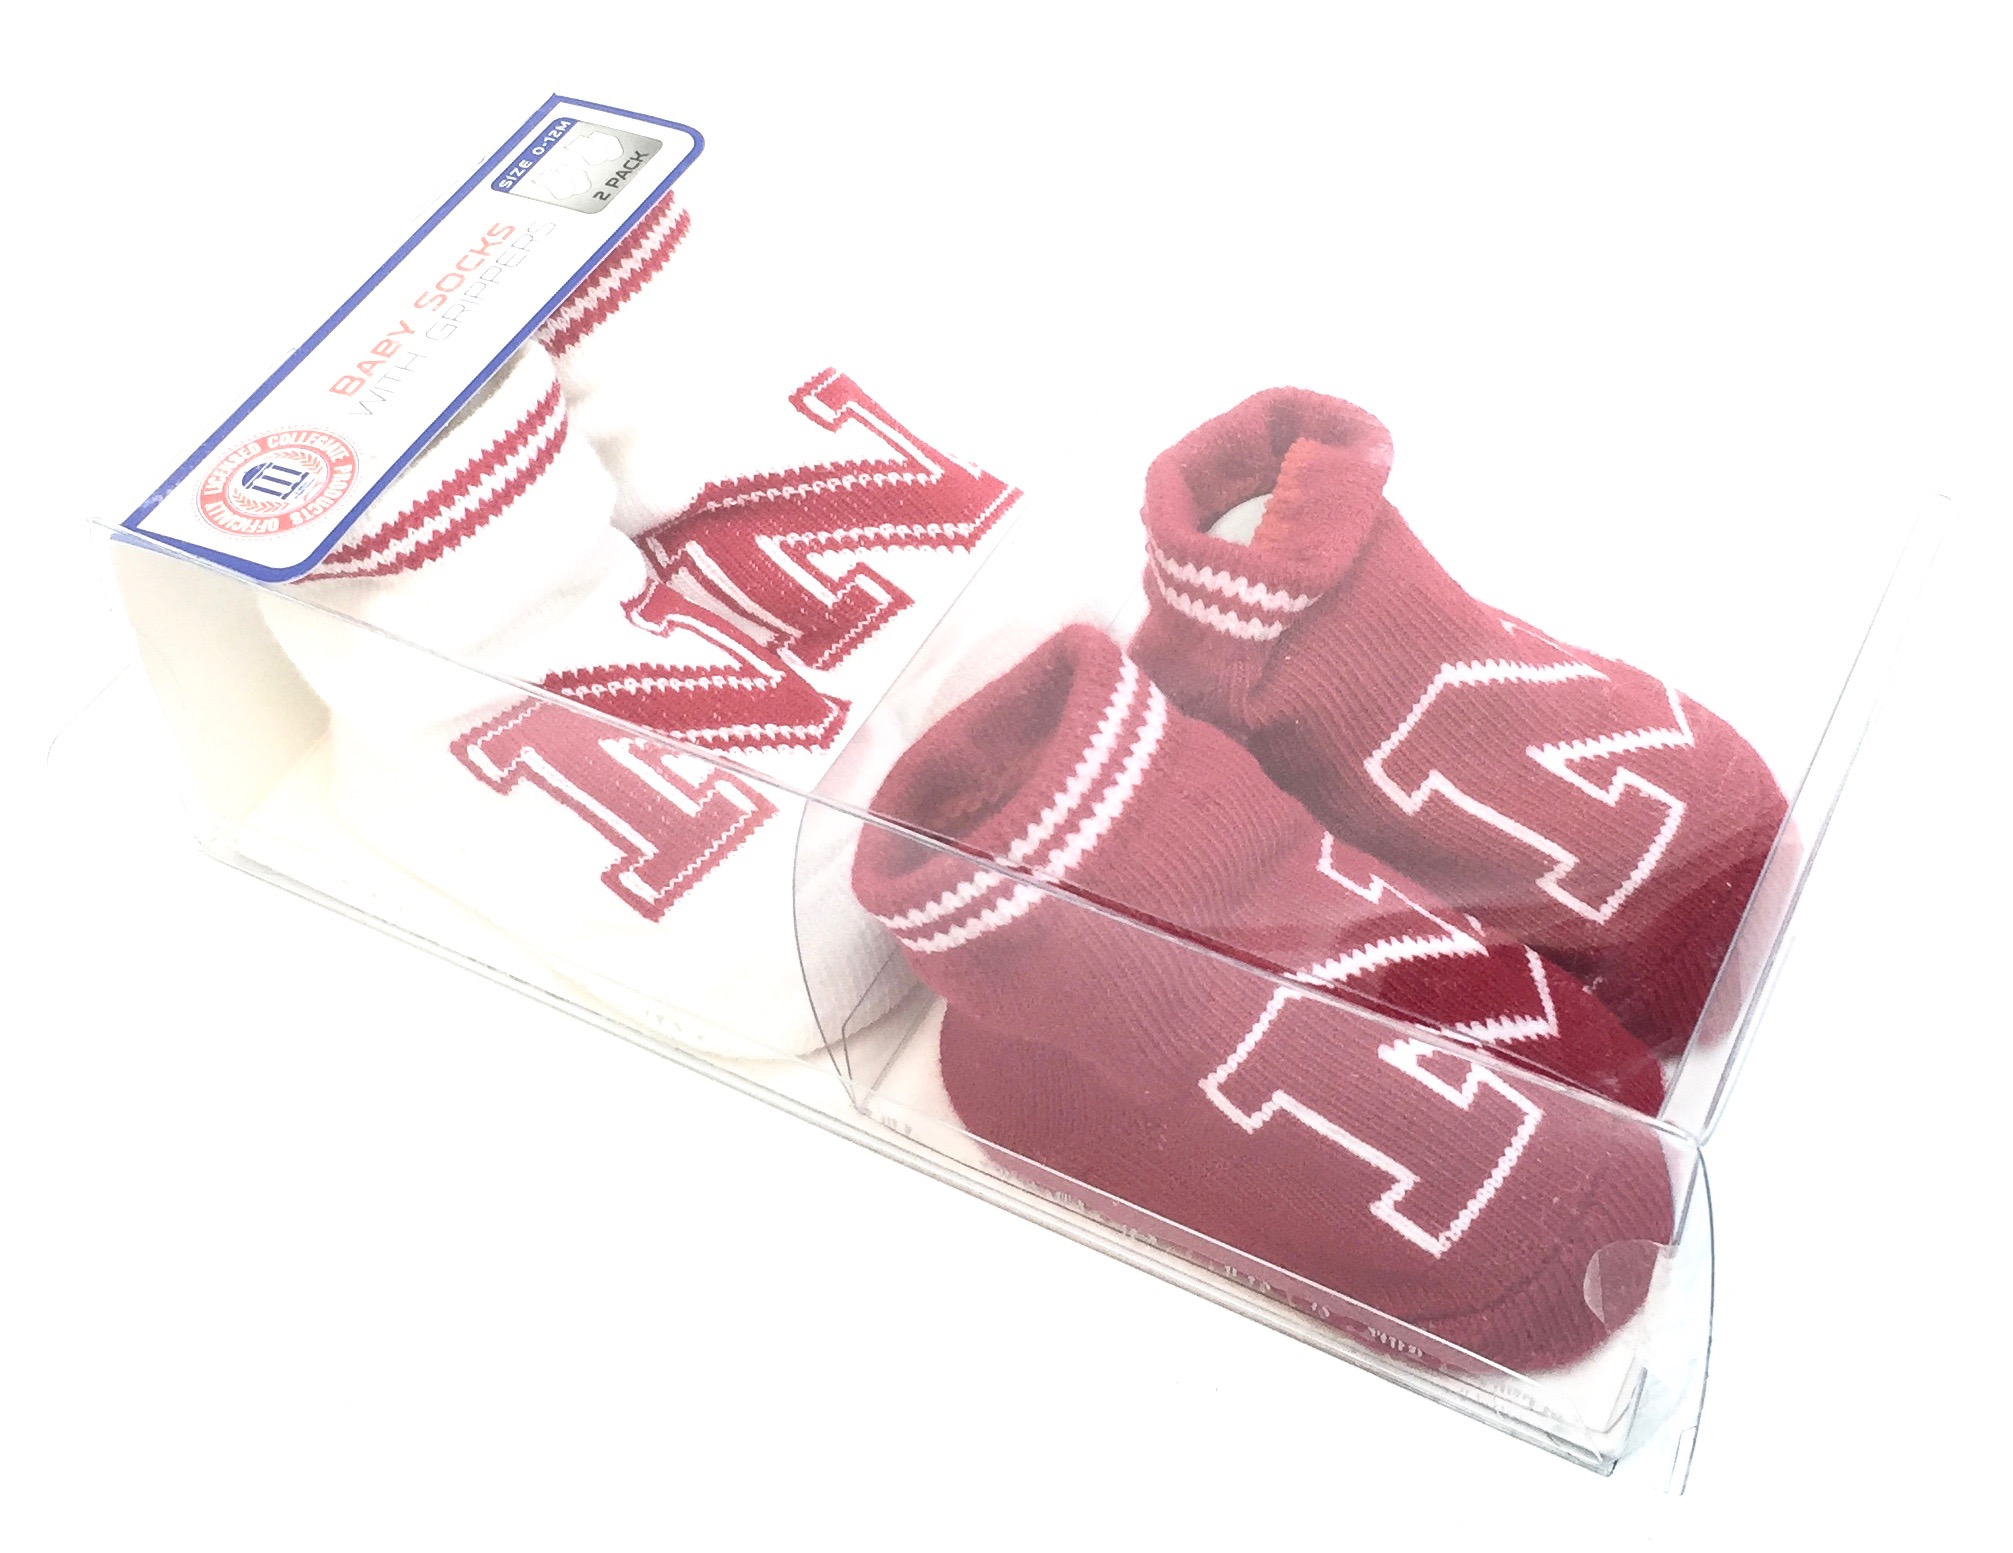 Boxed 2 Pk Baby Socks w/Grippers - Nebraska